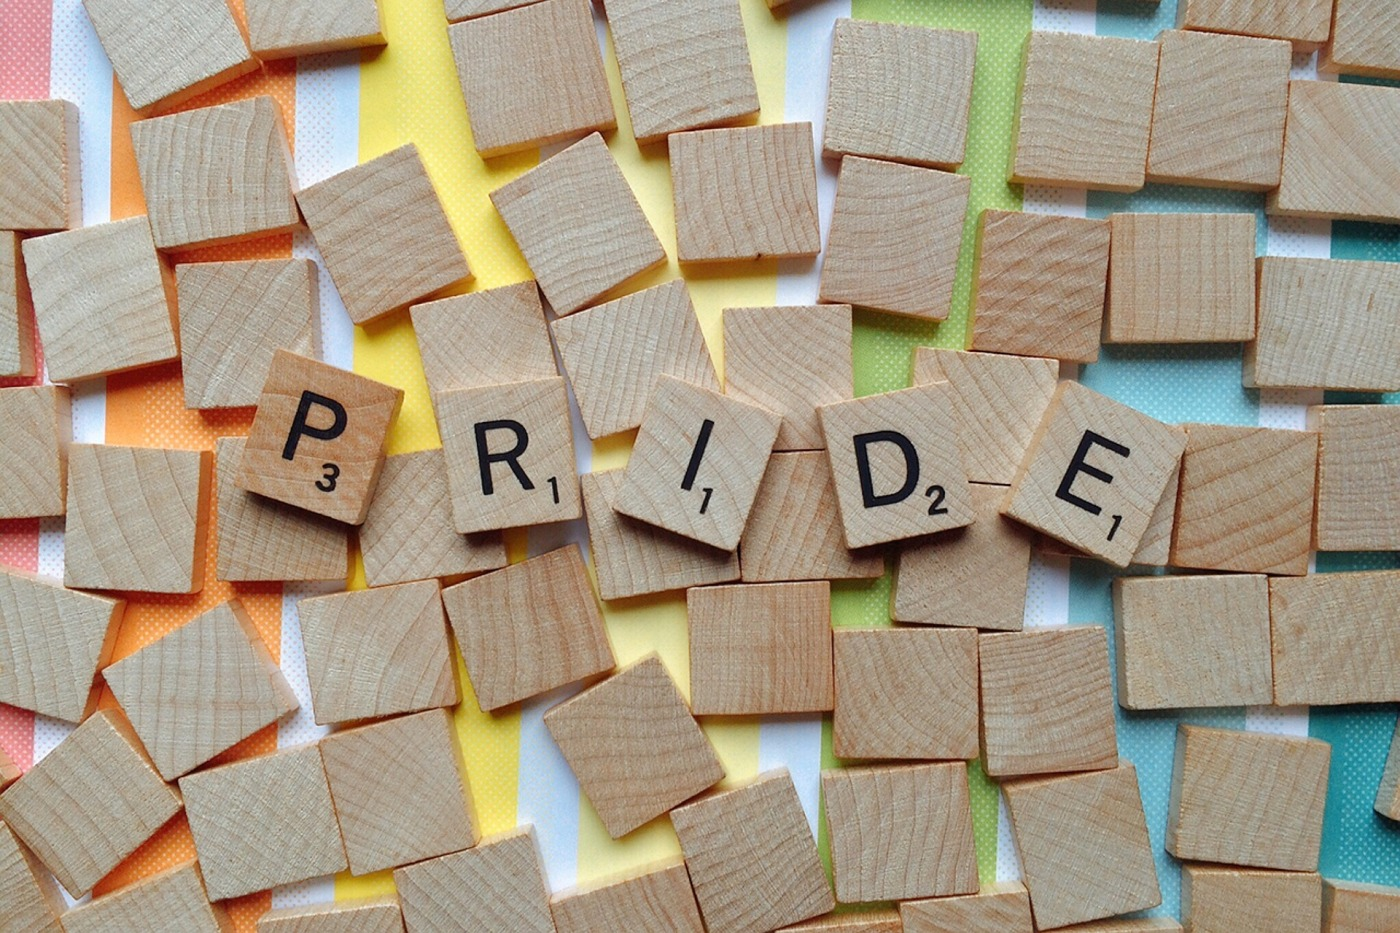 Pride - Conversation therapy - Human rights